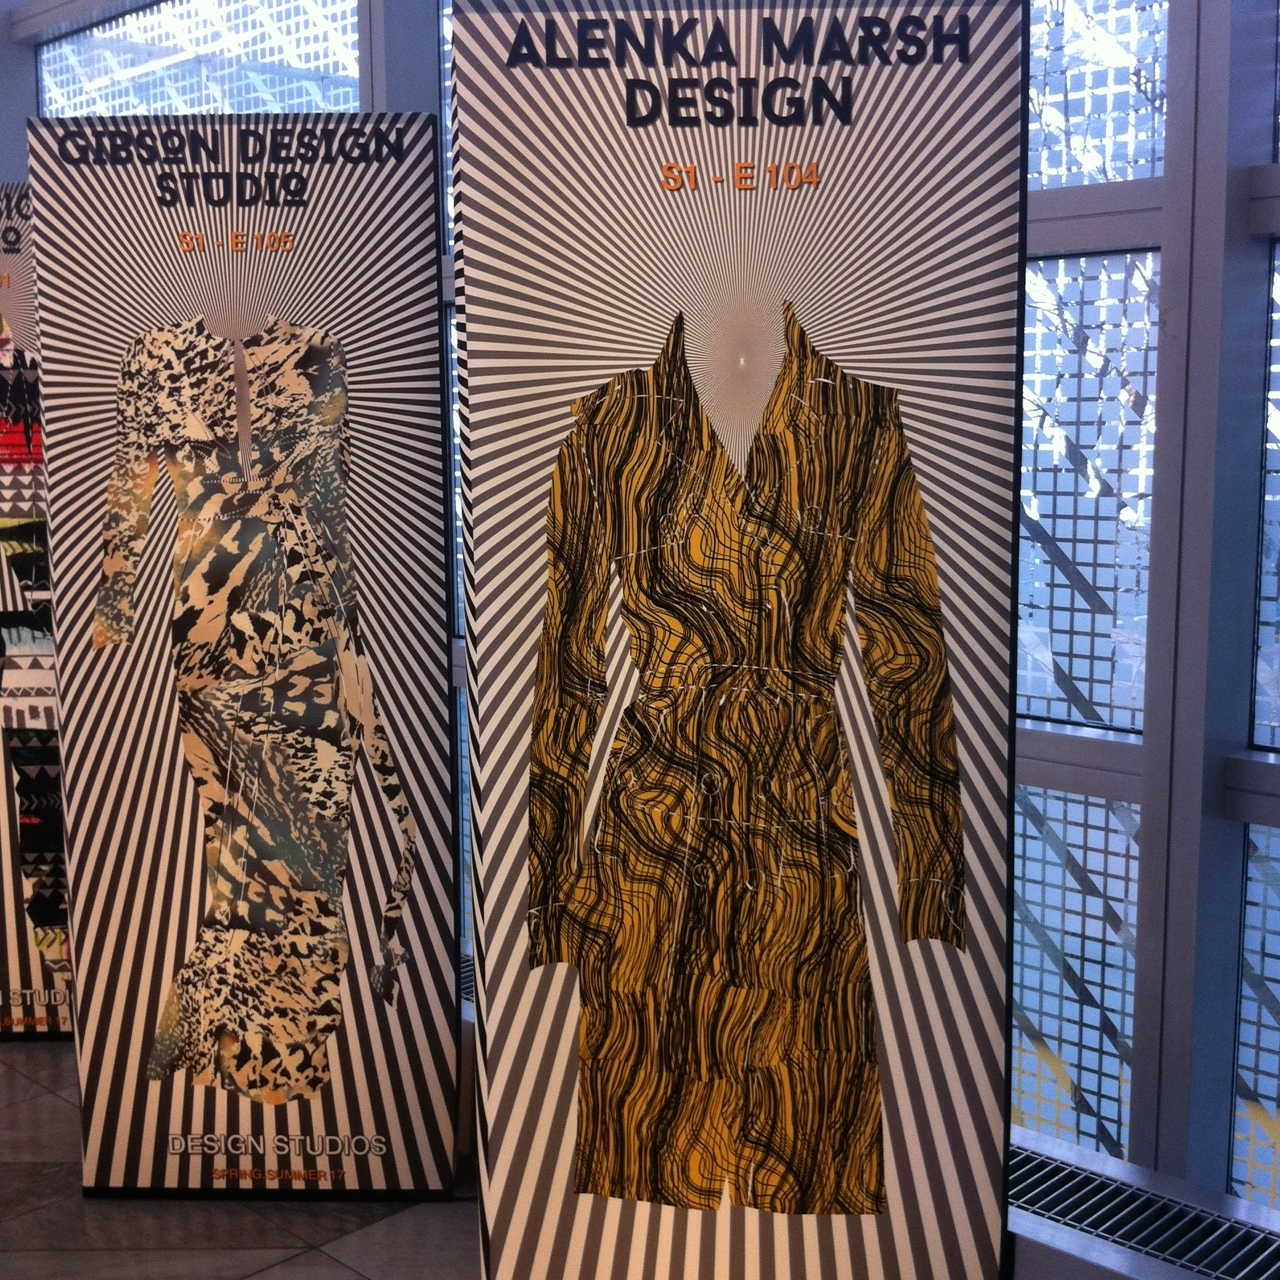 Munich Fabric Start - The Alenka Marsh Agency successfully presented my designs at the Munich Textile Fair, where my designs got exhibited as a trend selection for SS2017 in the presentation hall of Designers and Design Agencies.